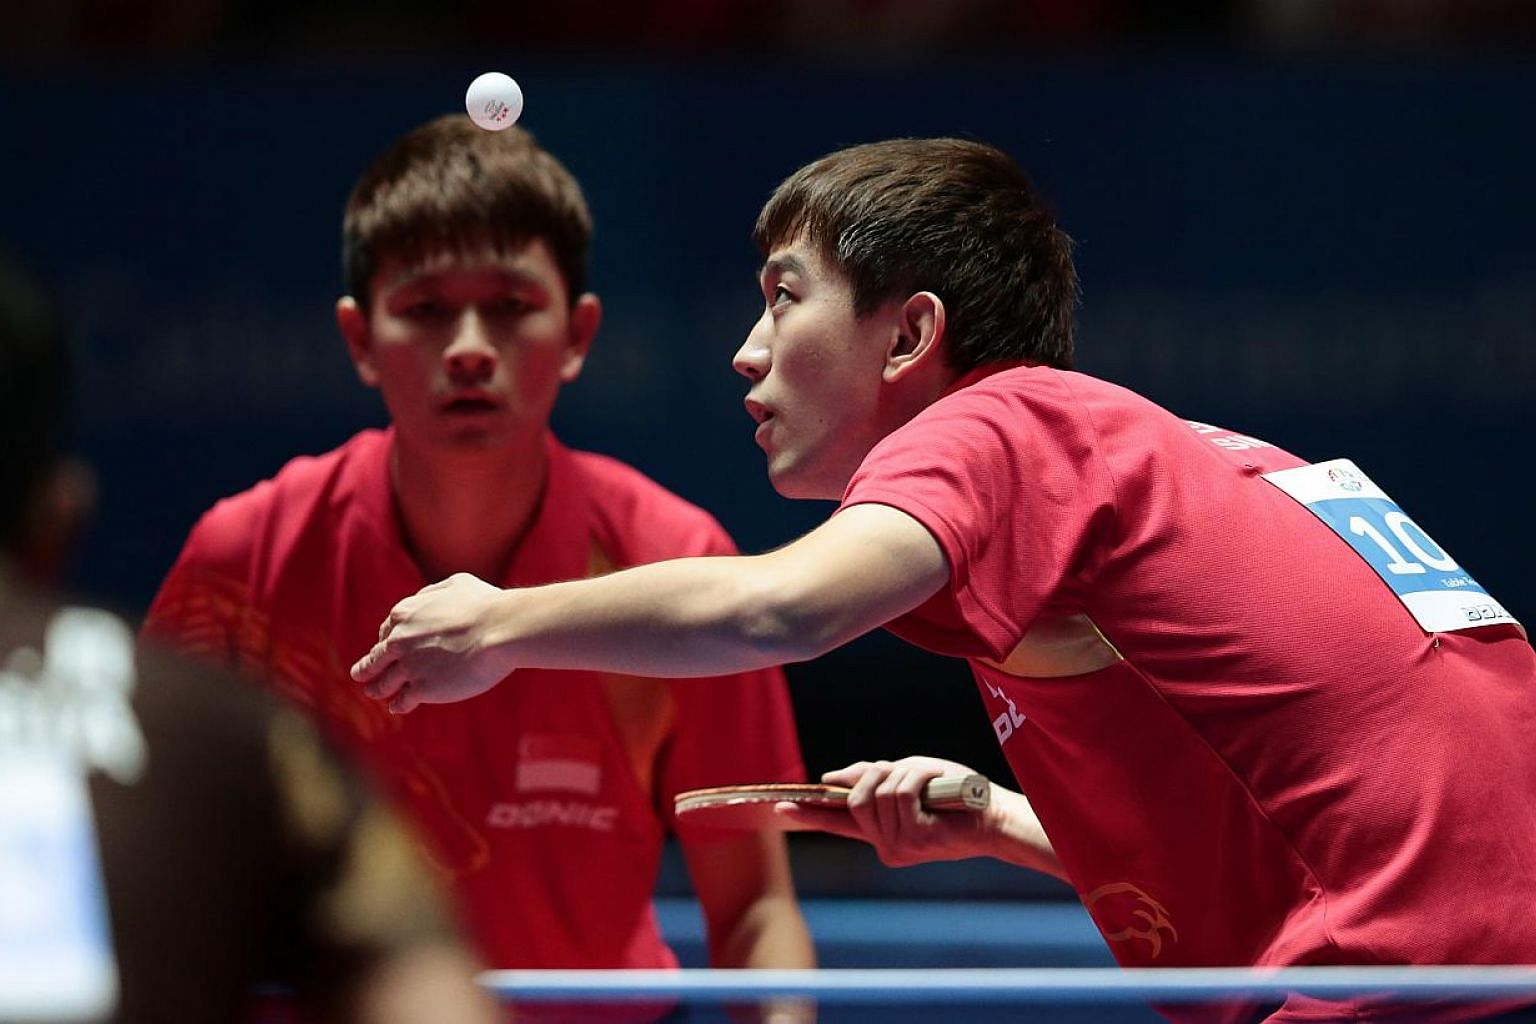 Singapore's Chen Feng (right) and Chew Zhe Yu Clarence in action at the SEA Games 2015. The Republic paddlers are on course for all-Singapore finals in both the SEA Games men's and women's doubles competitions, as all four pairings progressed into se